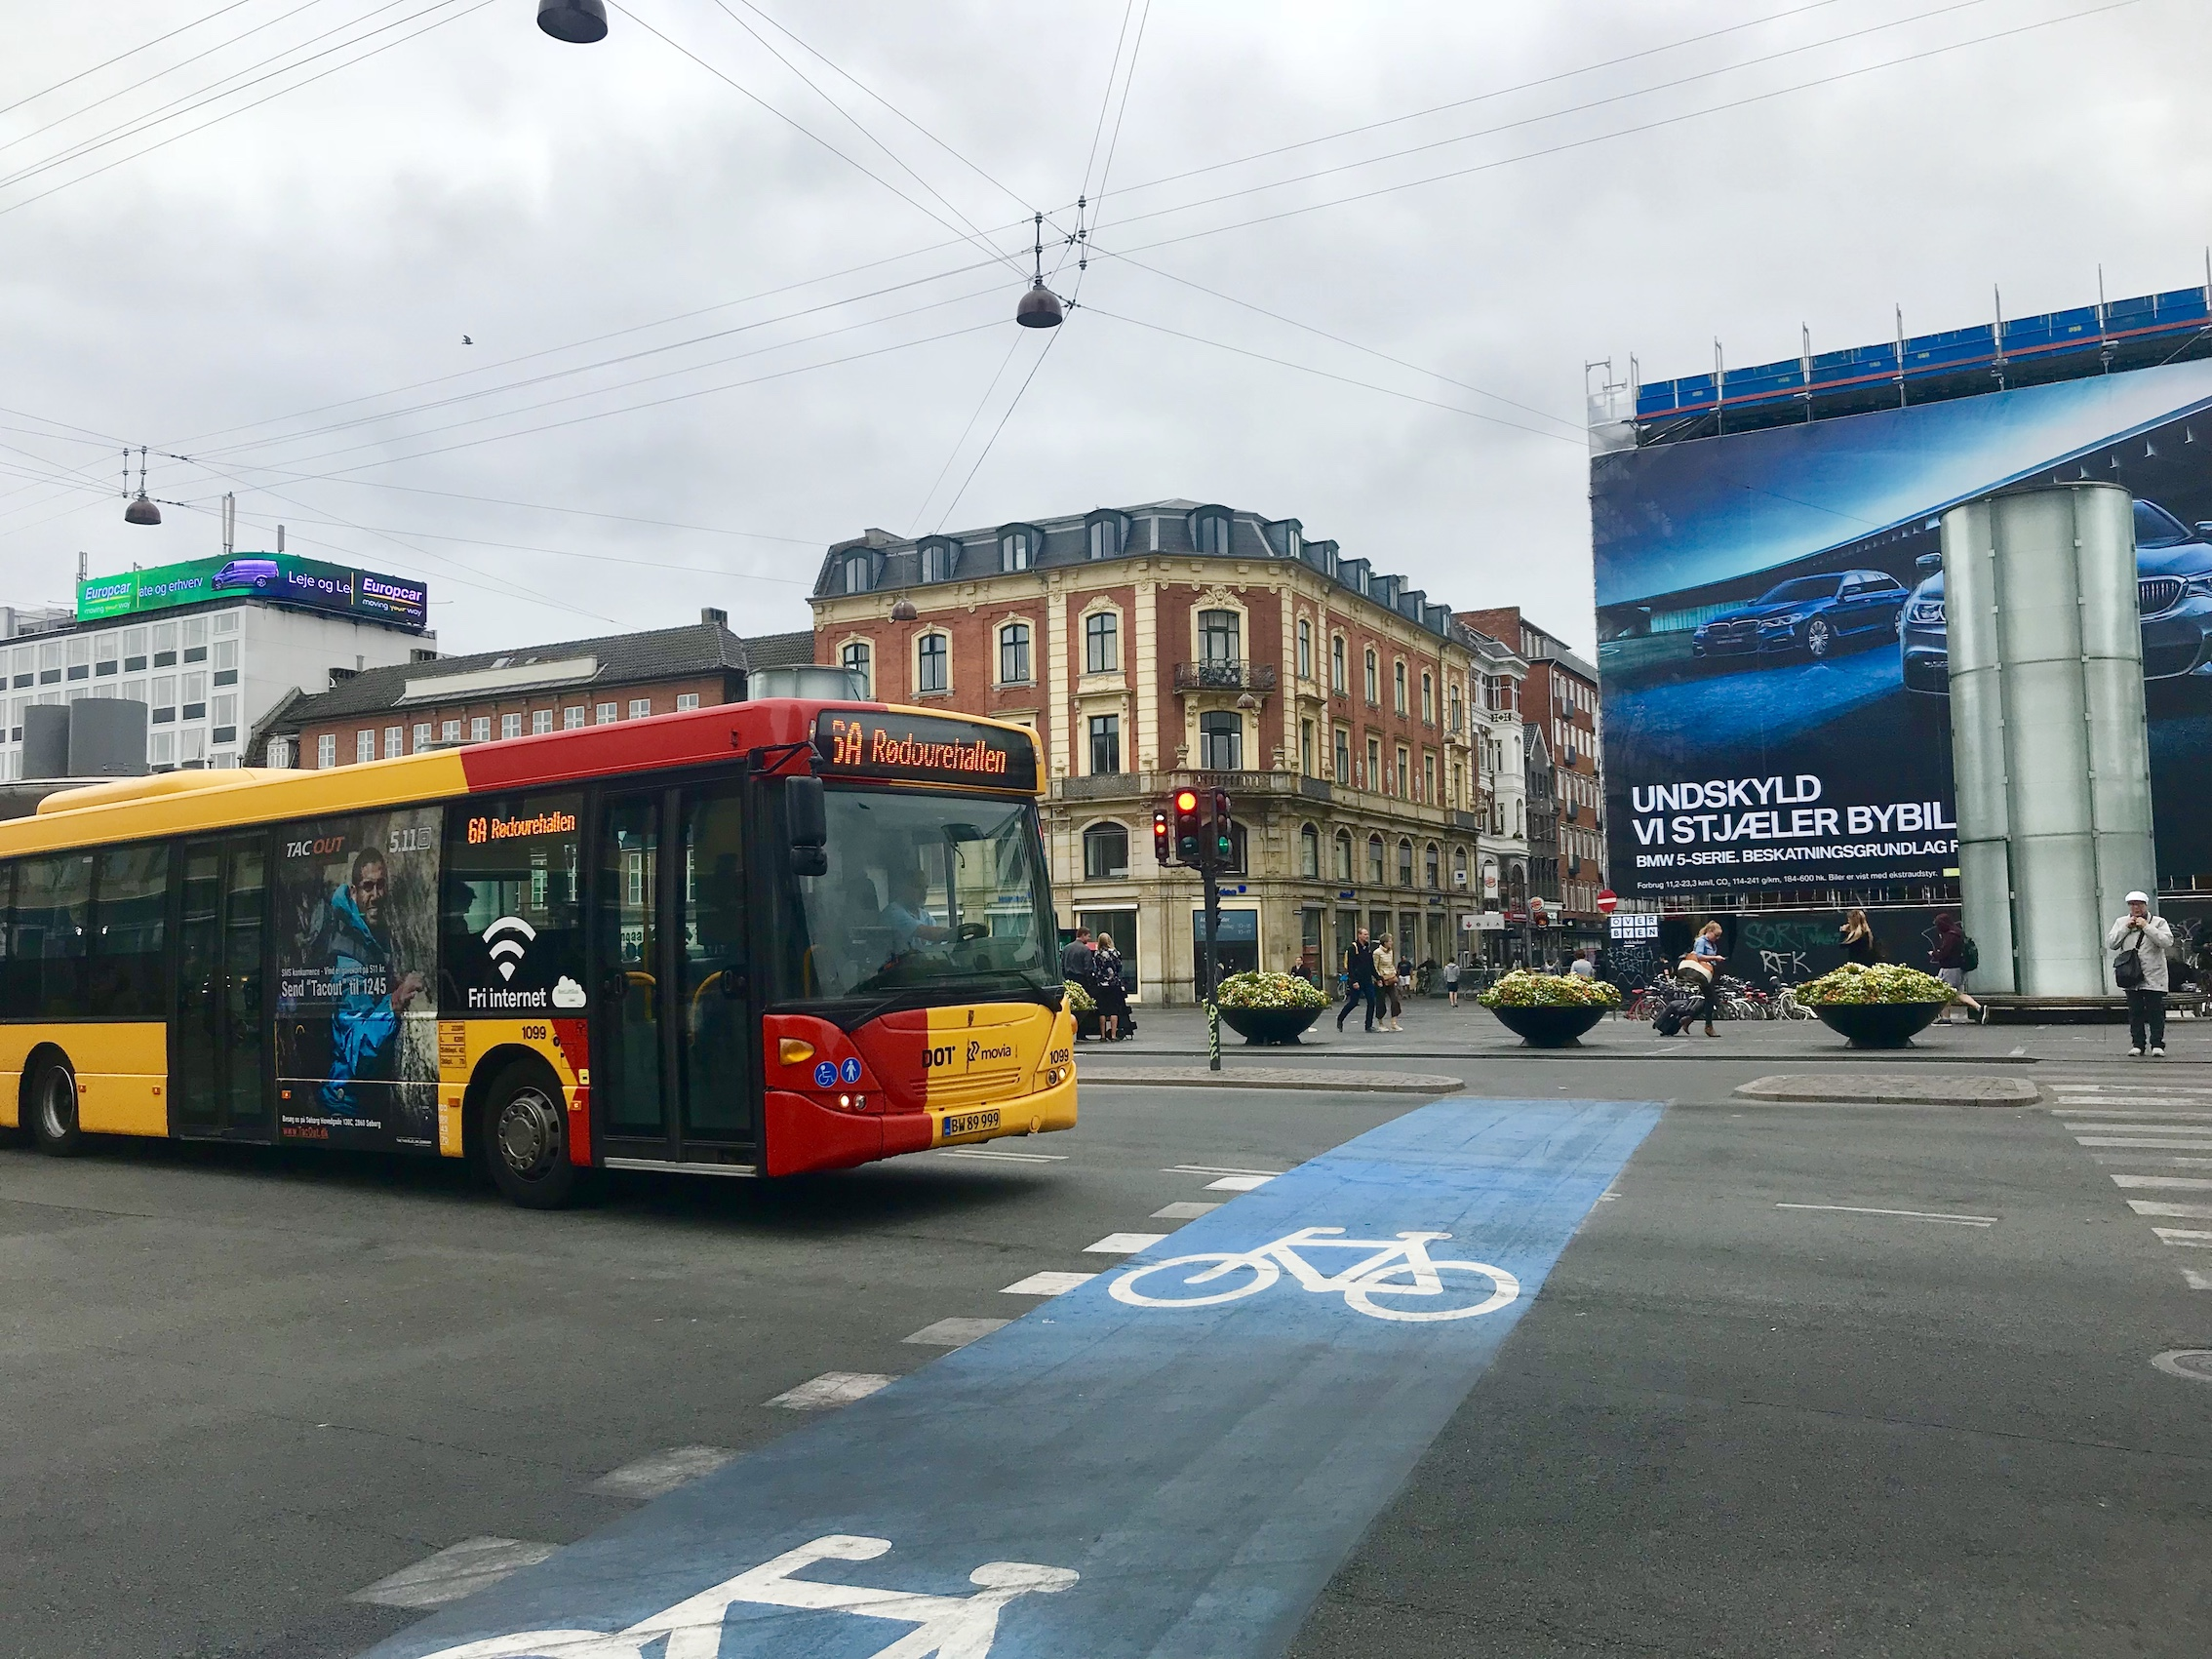 bus_crossing_cycle_lane_junction_yellow_copenhagen